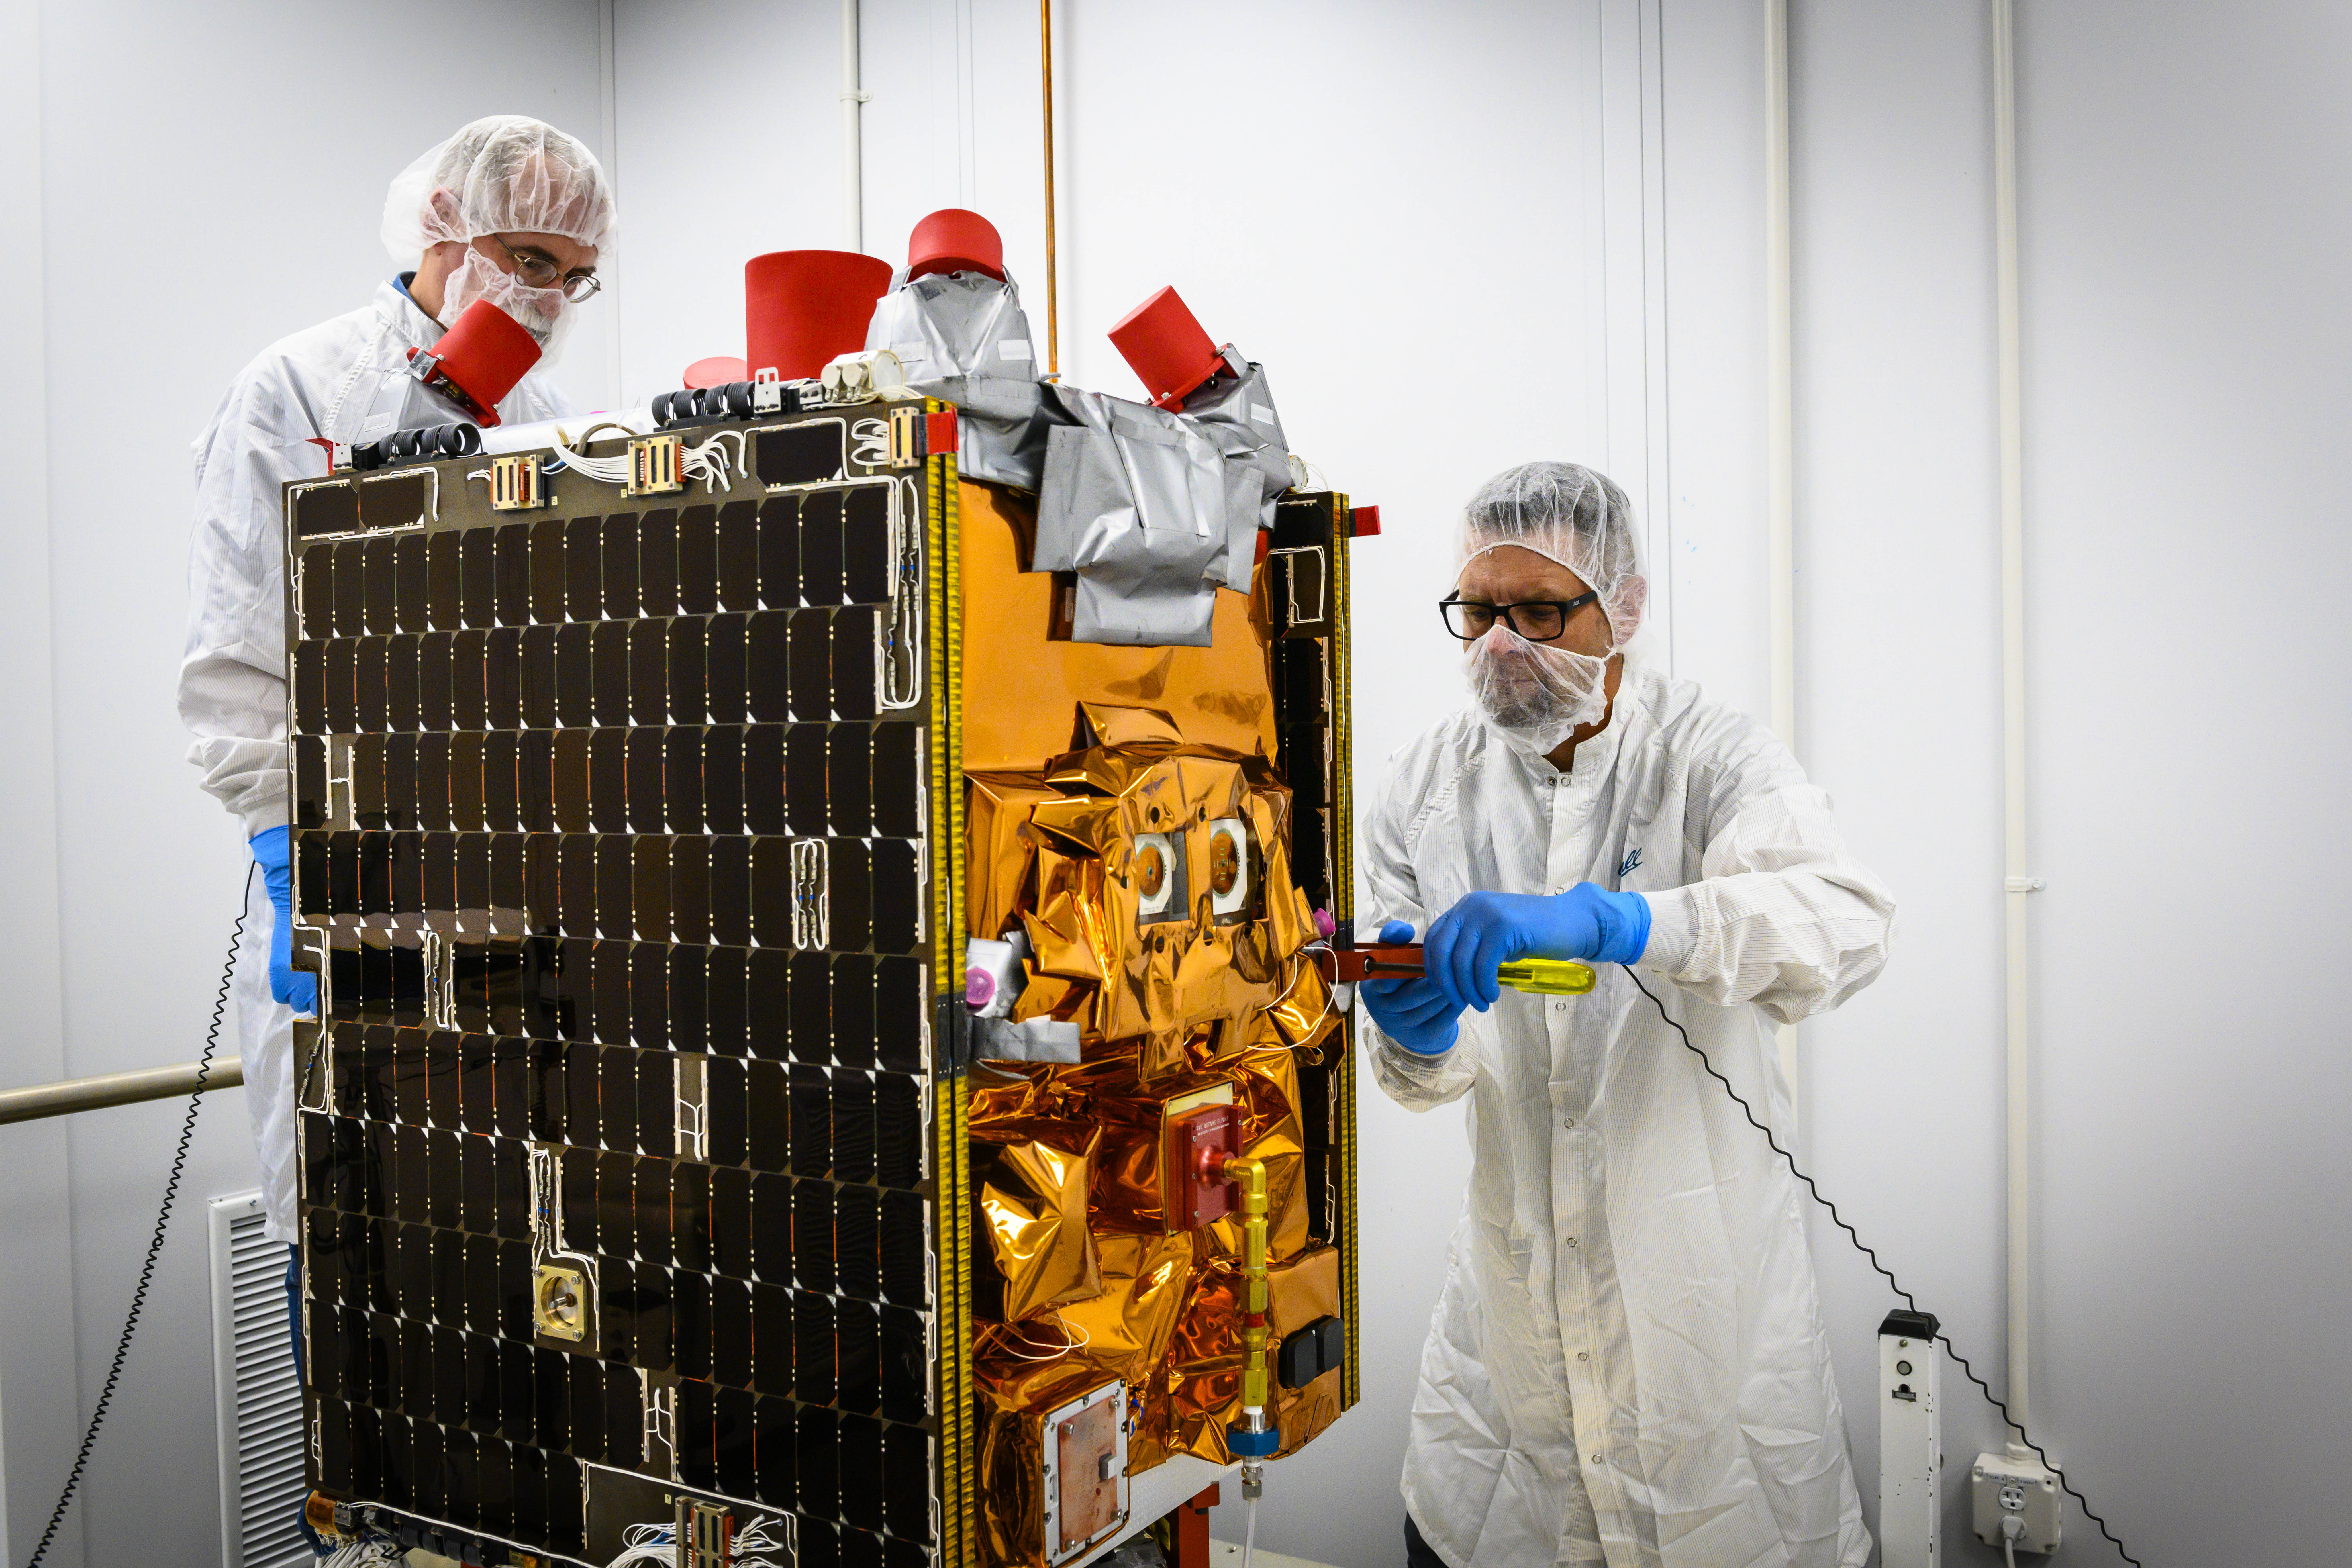 NASA Spacecraft to use 'Green' Fuel for the First Time | NASA